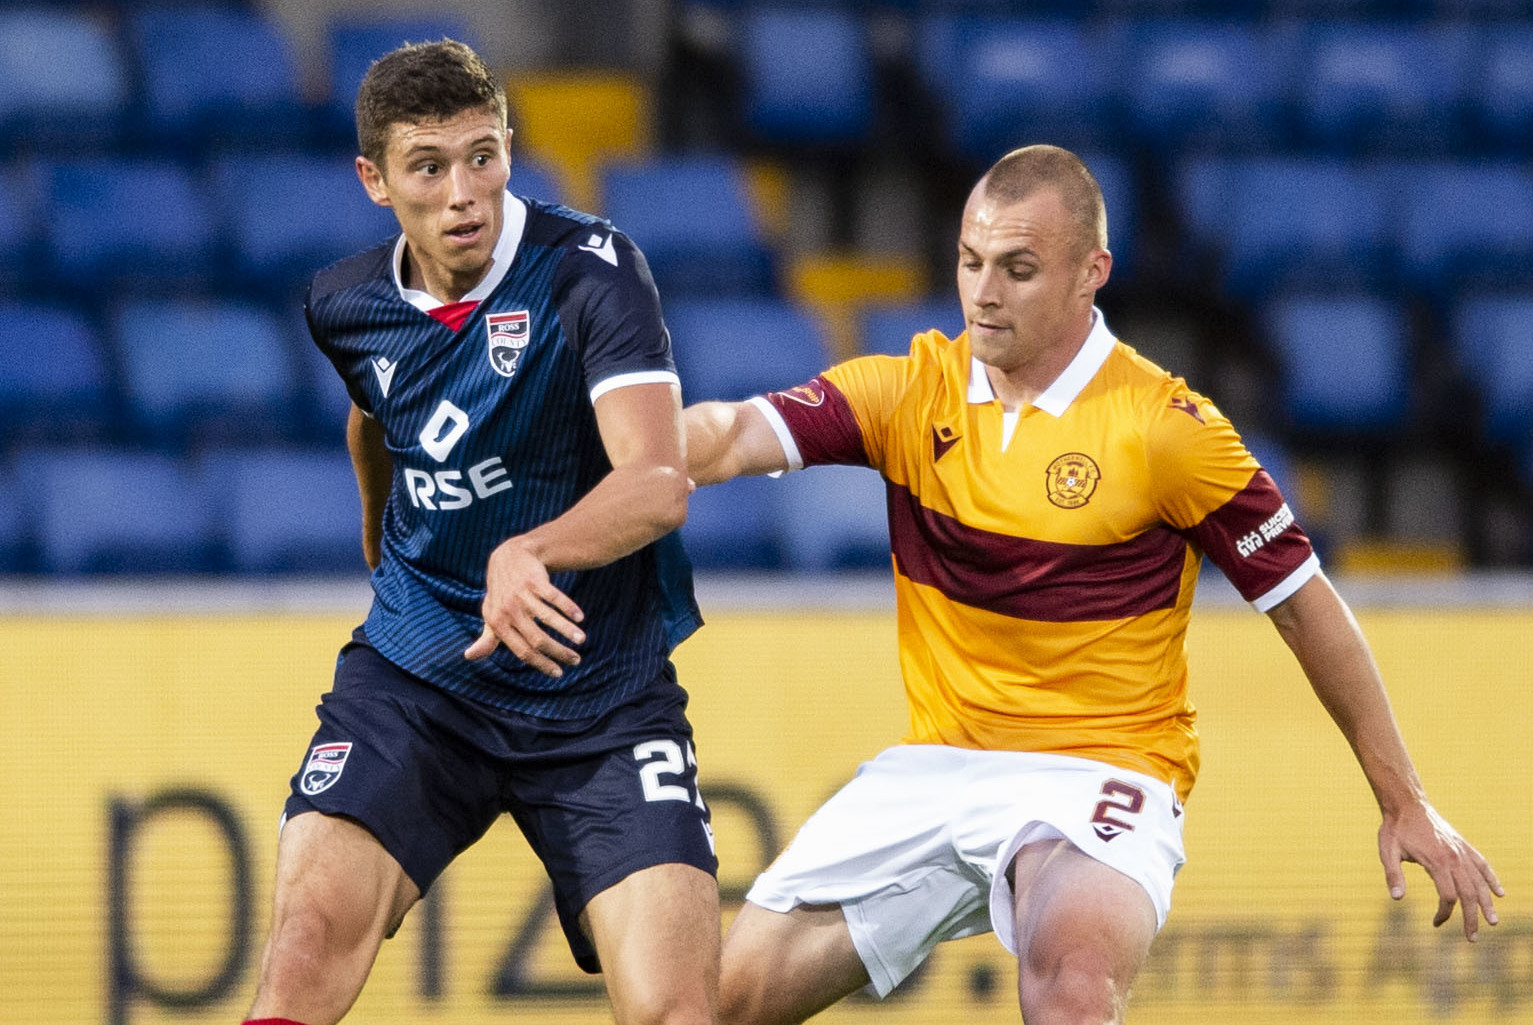 Richard Brittain keeping fingers crossed no deadline day bids are tabled for Ross County striker Ross Stewart